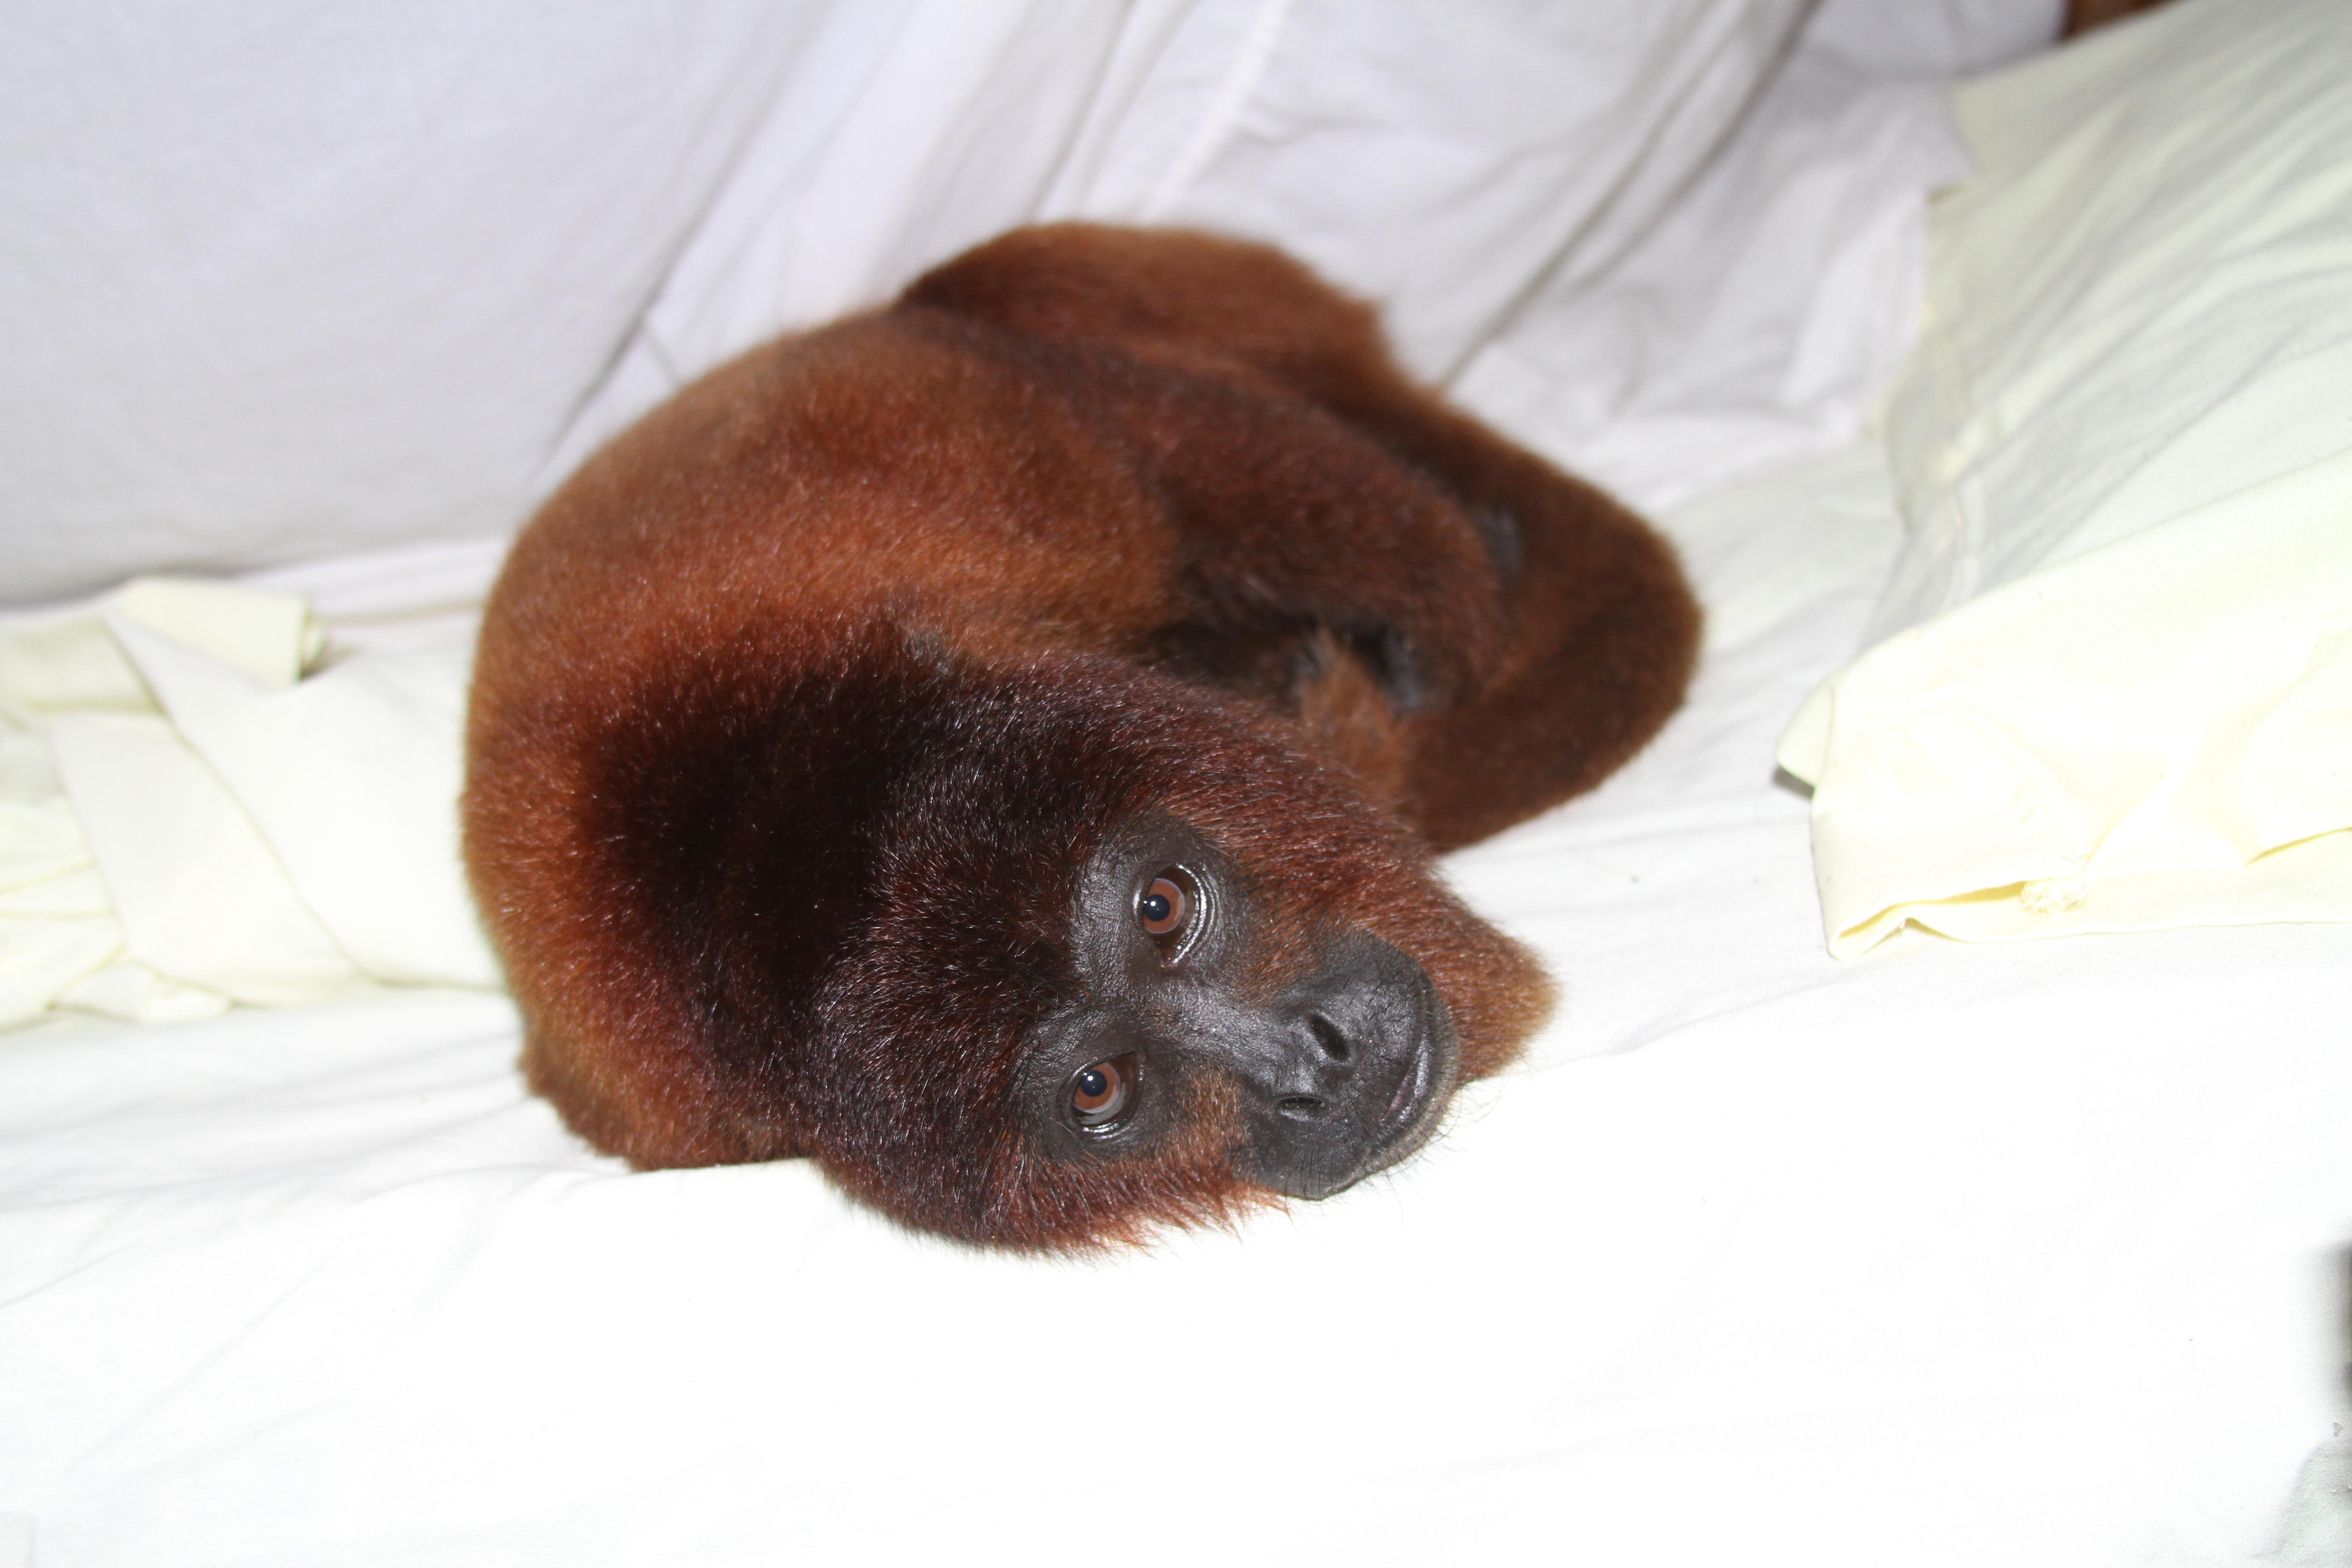 Monkey the adorable Howler Monkey may wake you up at the Amazon shelter!